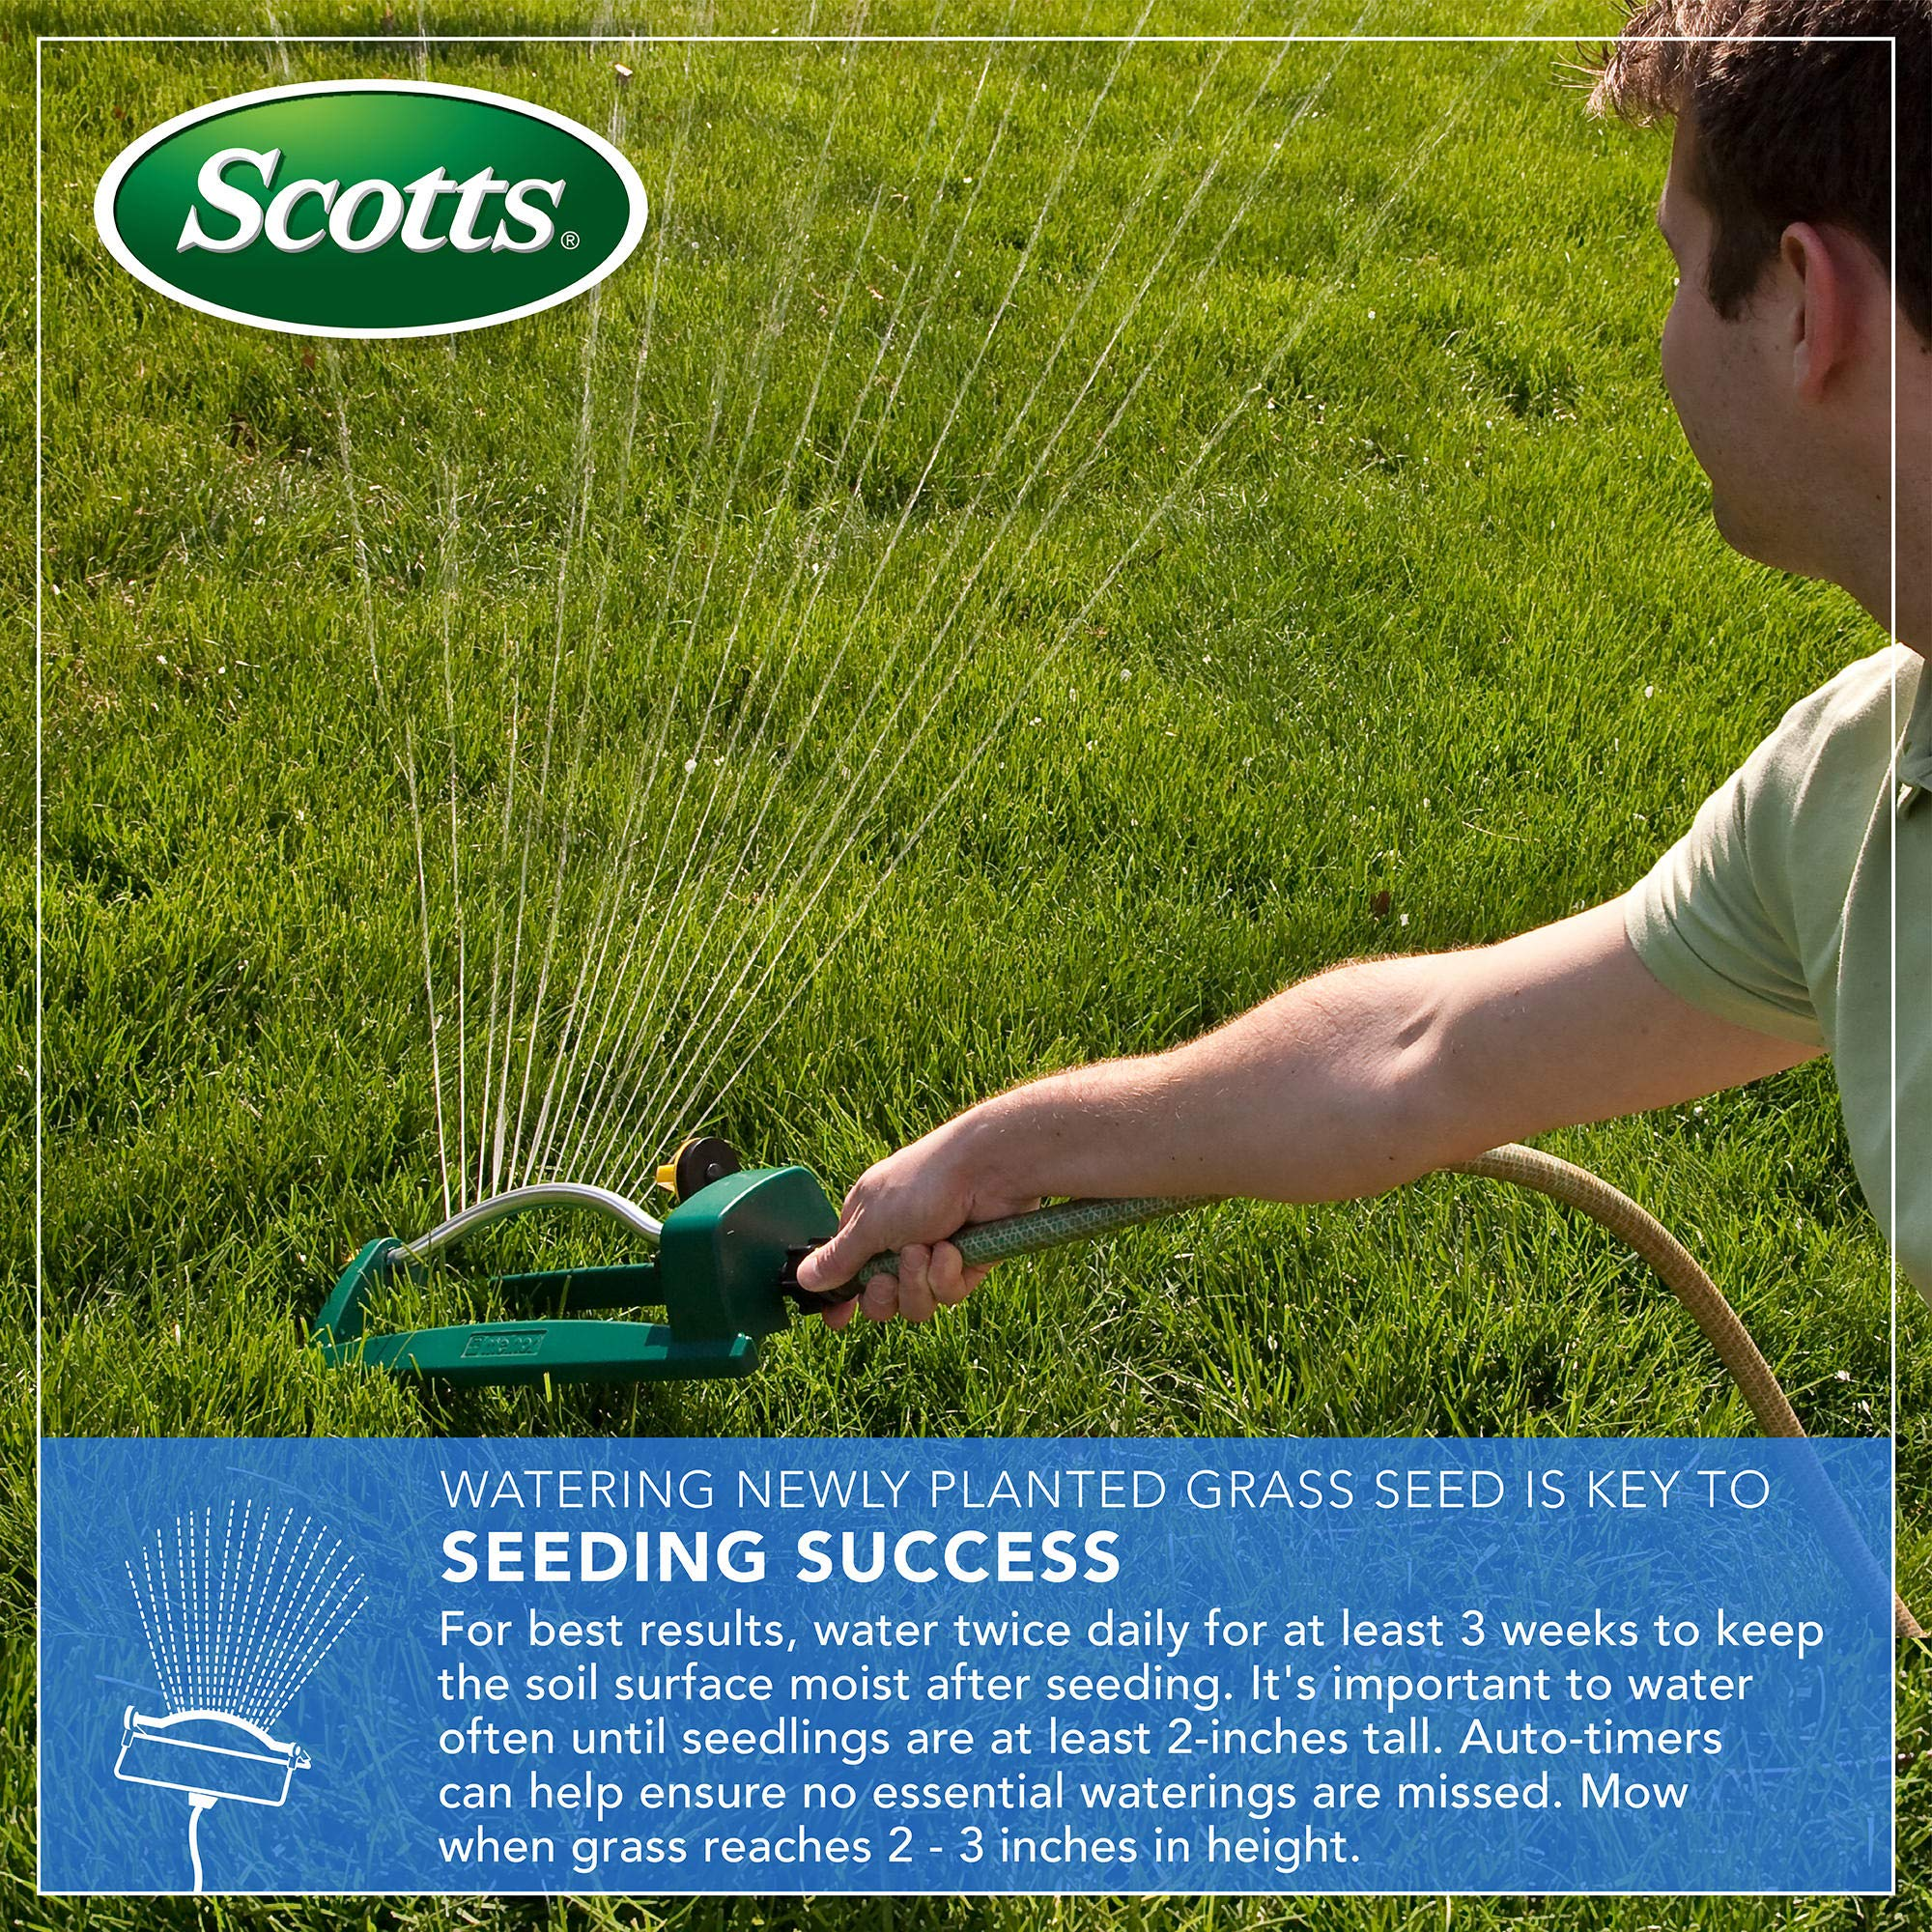 Scotts Turf Builder Grass Seed - Southern Gold Mix for Tall Fescue Lawns, 20-Pound (Sold in select Southern states) by Scotts (Image #4)